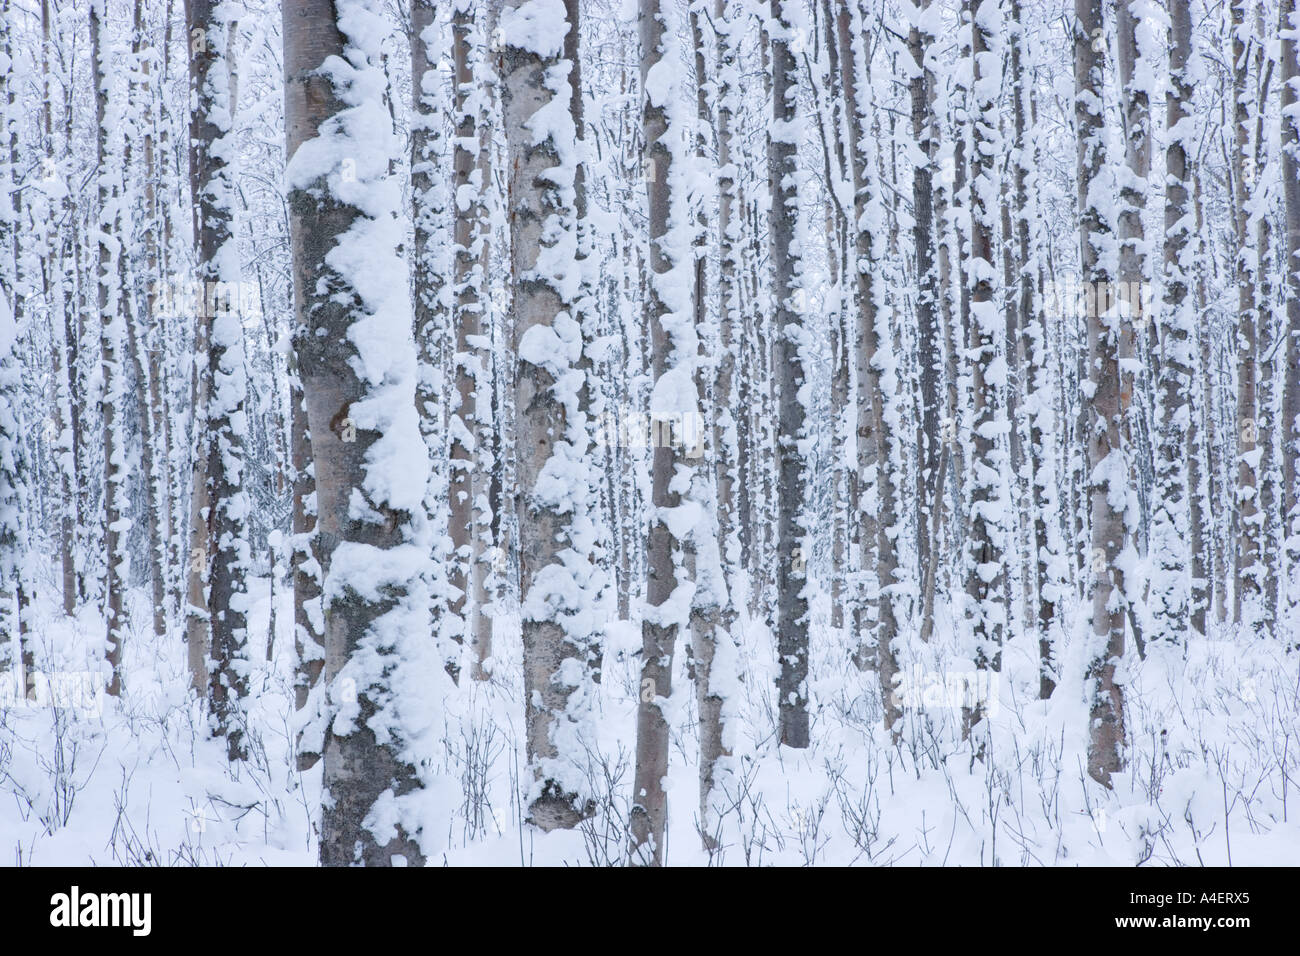 Birch trees in the winter stock photo image 2170700 - Birch Trees In The Winter Stock Photo Image 2170700 33